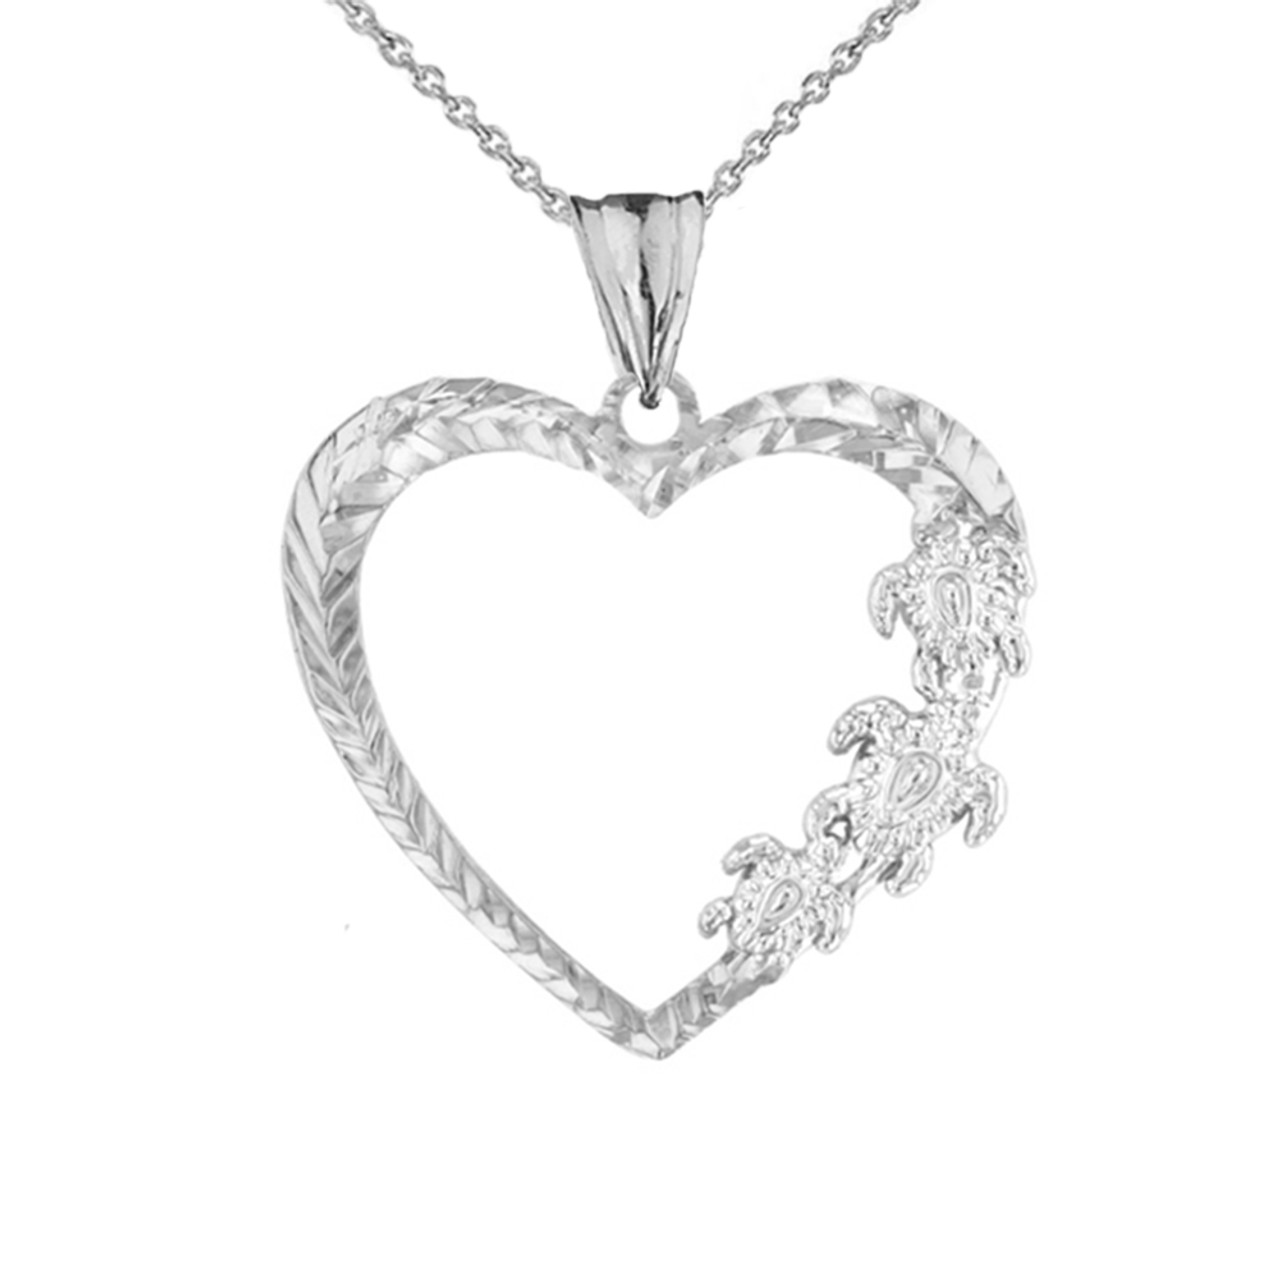 Daesar 925 Silver Necklace with Pendant Necklace for Women Fashion Dolphin Cubic Zirconia Necklace Pendant Silver